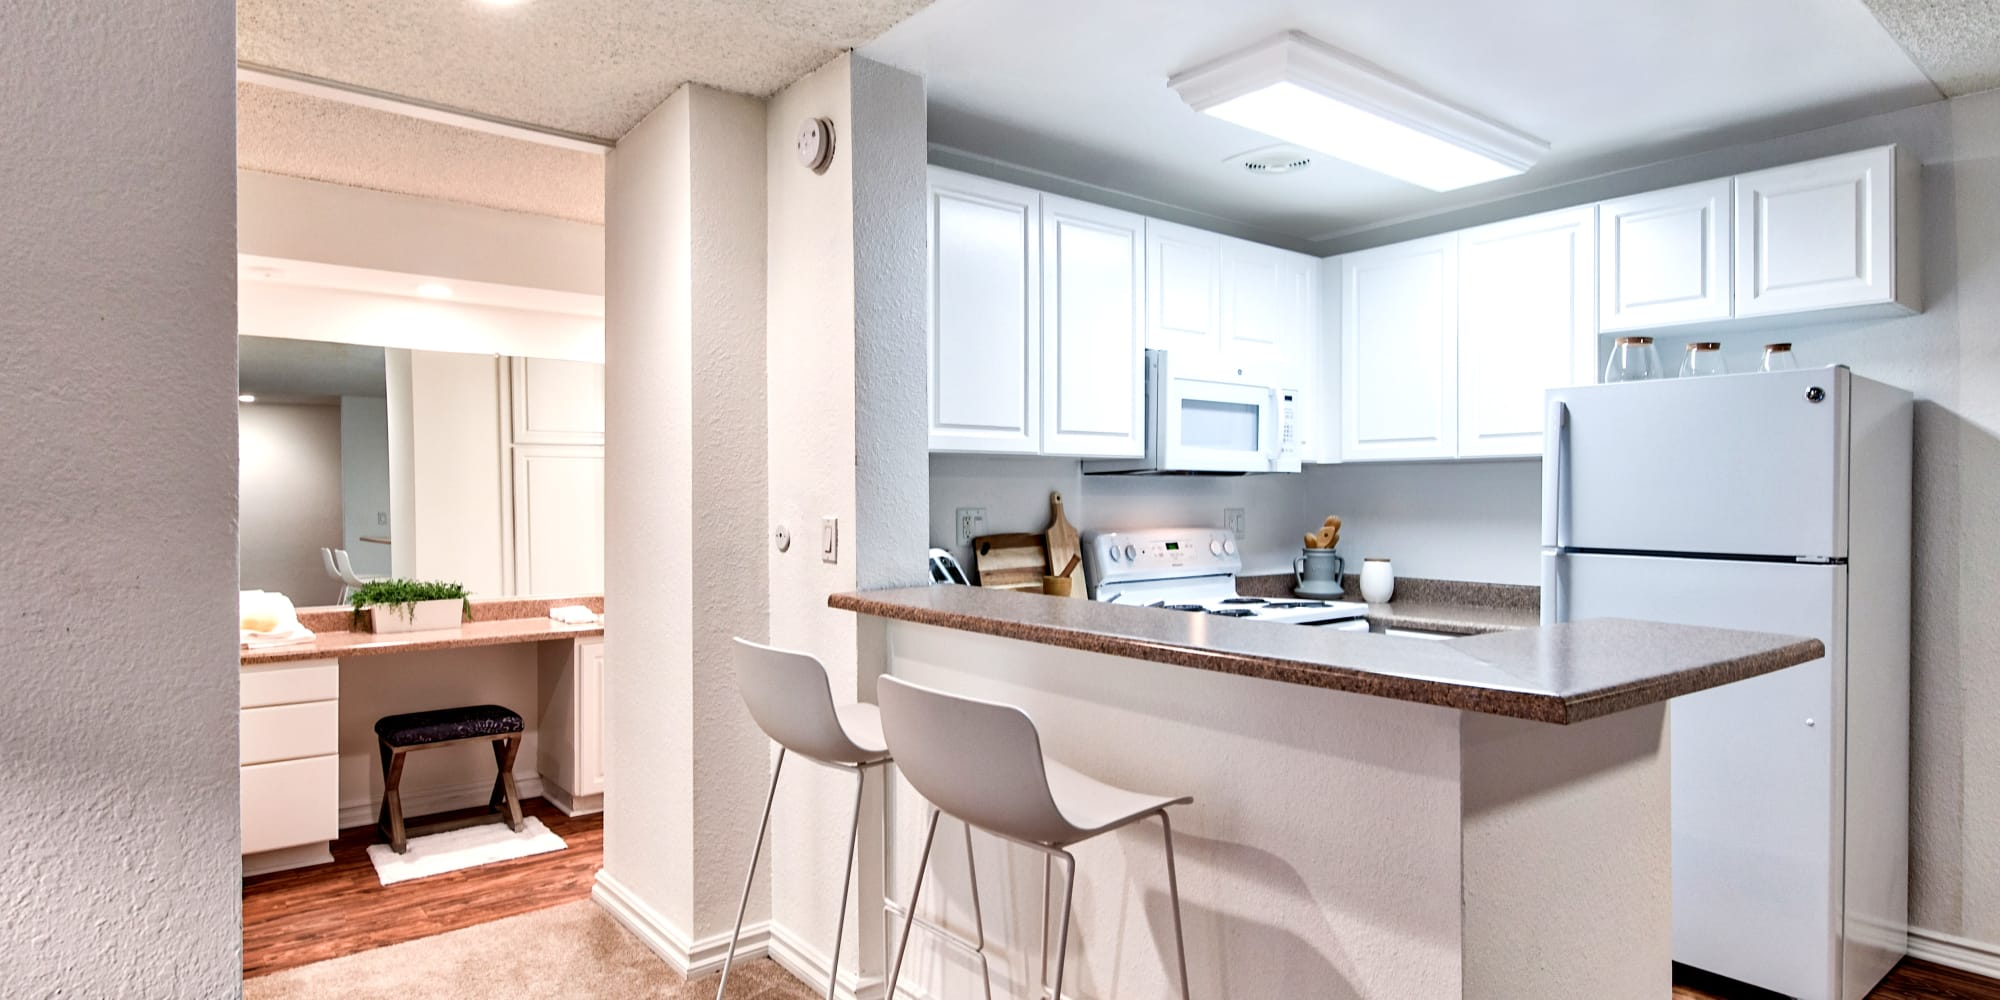 Kitchen with white appliances and cabinetry in a model home at The Meadows in Culver City, California